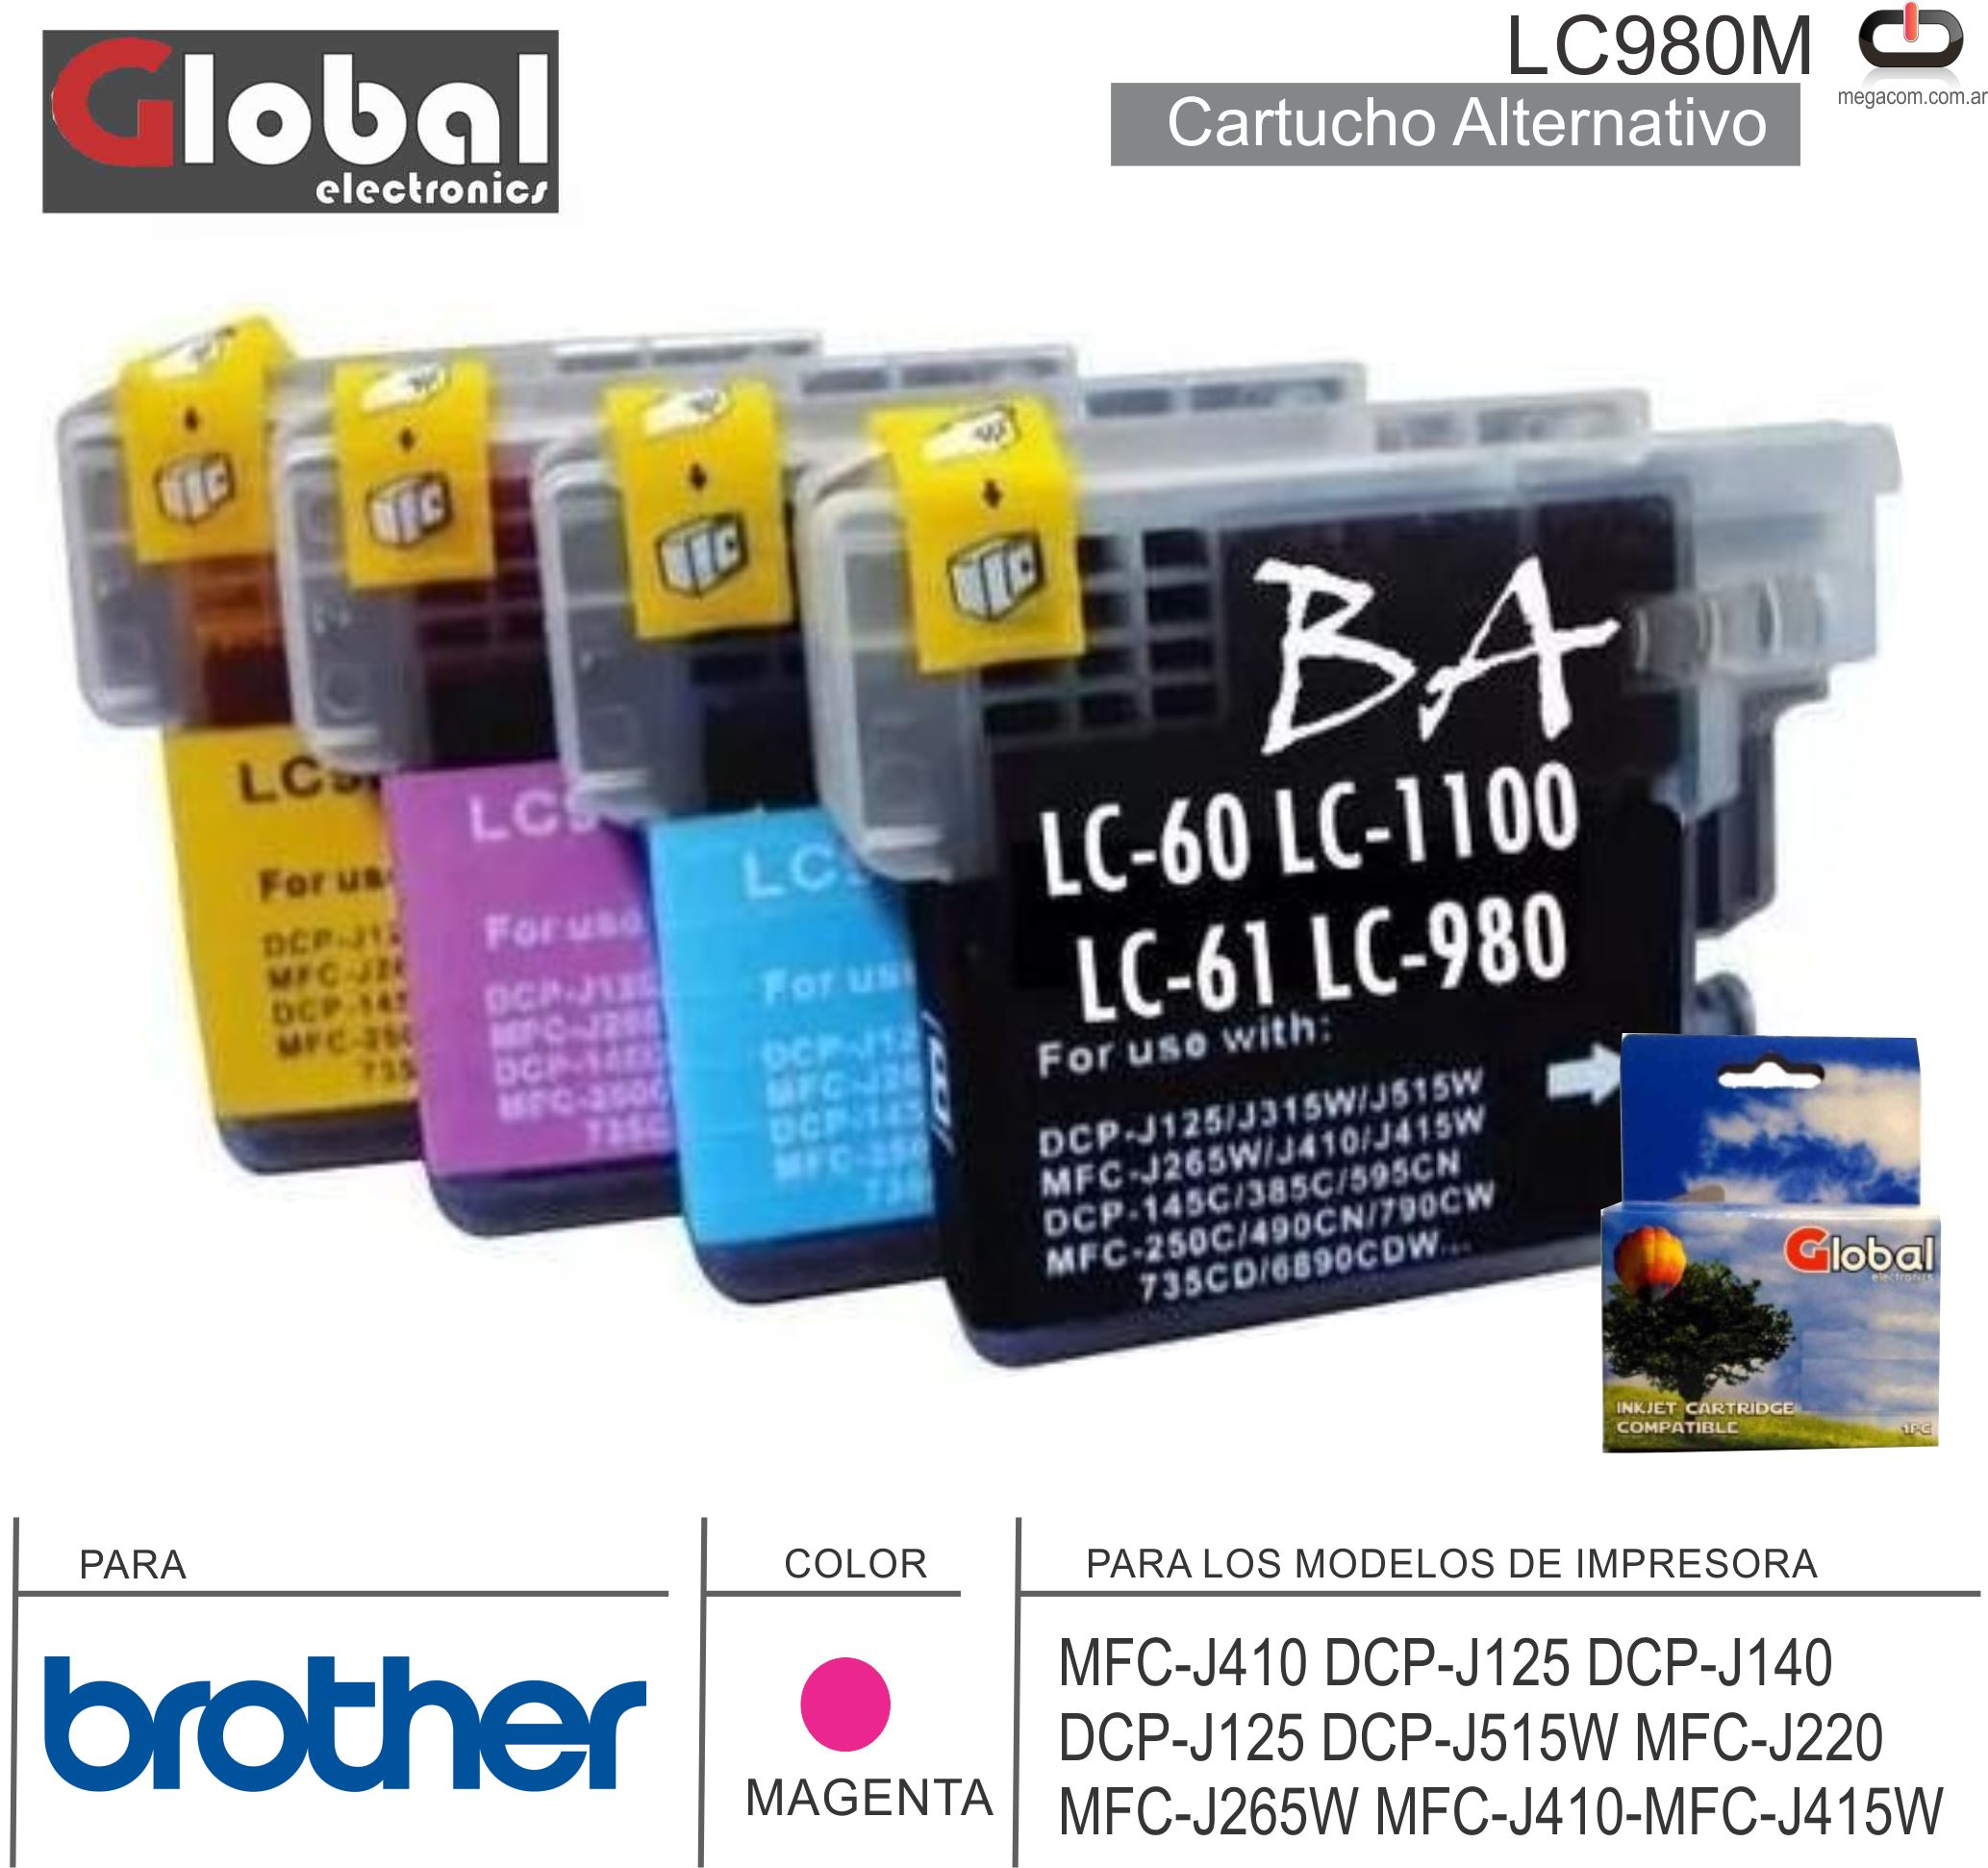 Cart ALT BROTHER LC980M Mag GLOBAL